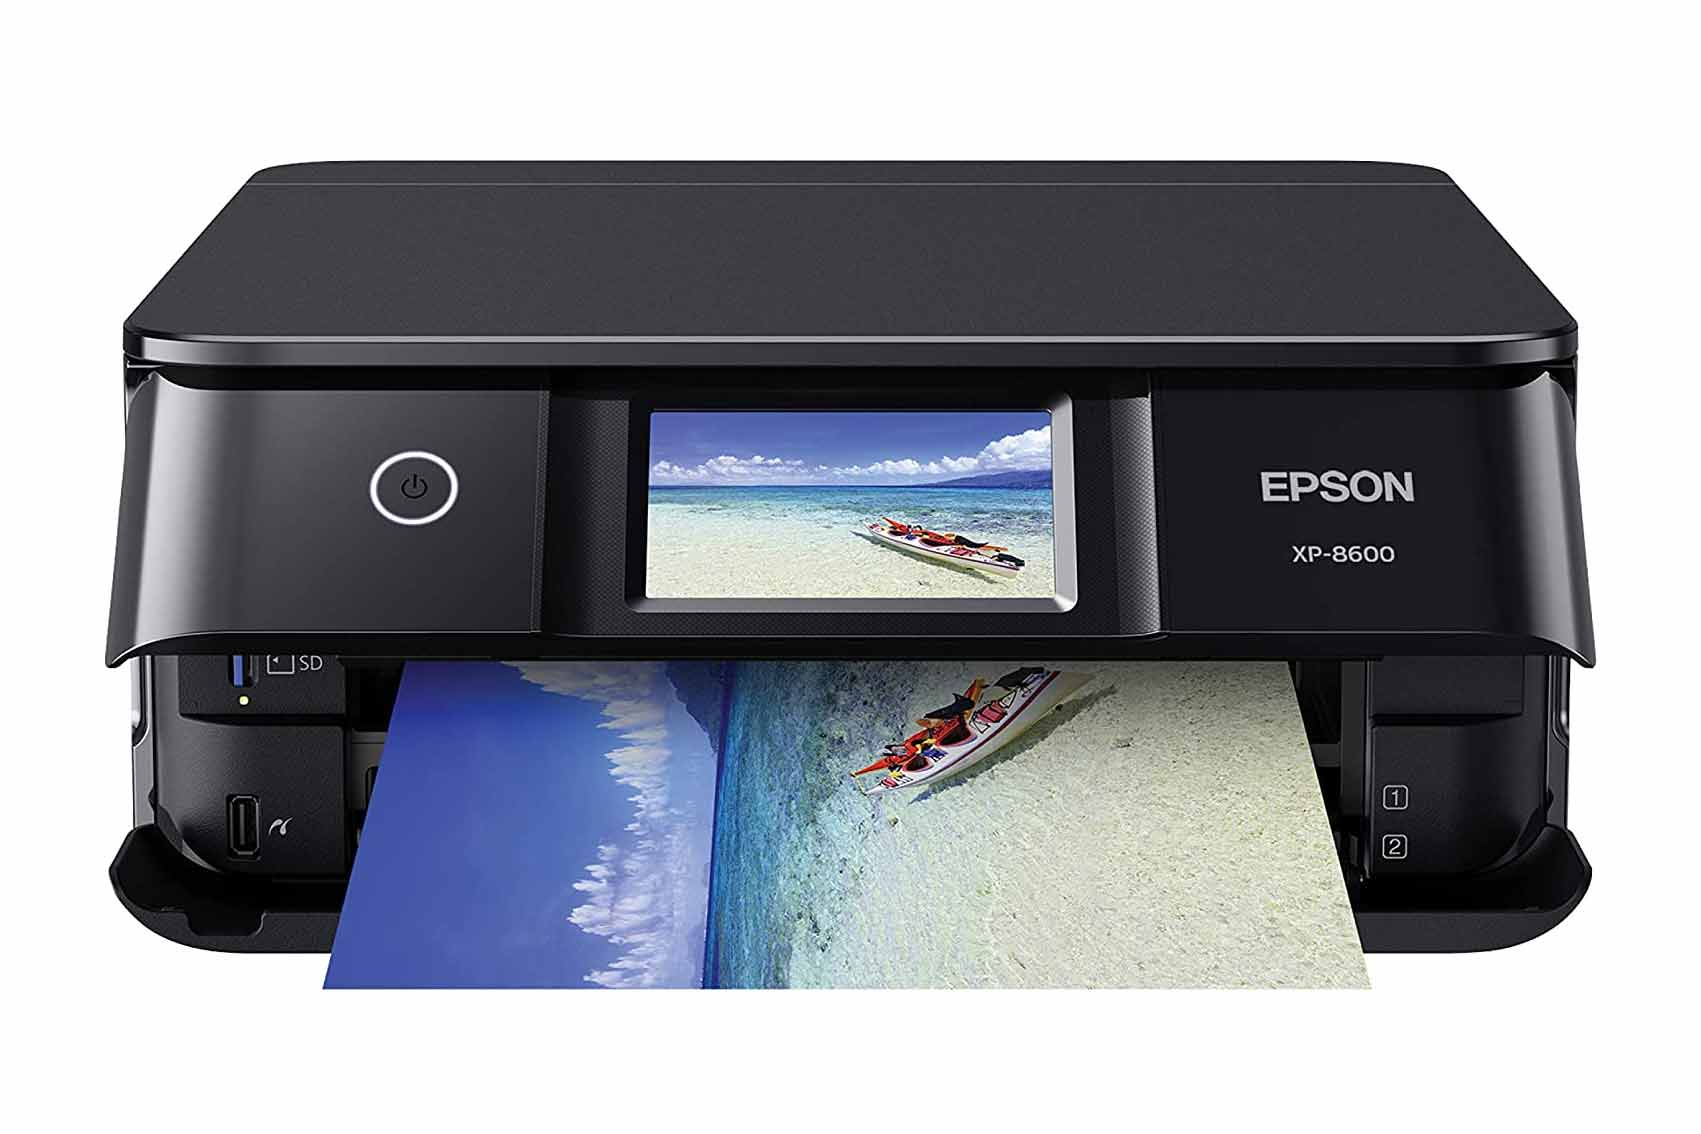 Epson XP-8600 - Most compact printer for graphic designers